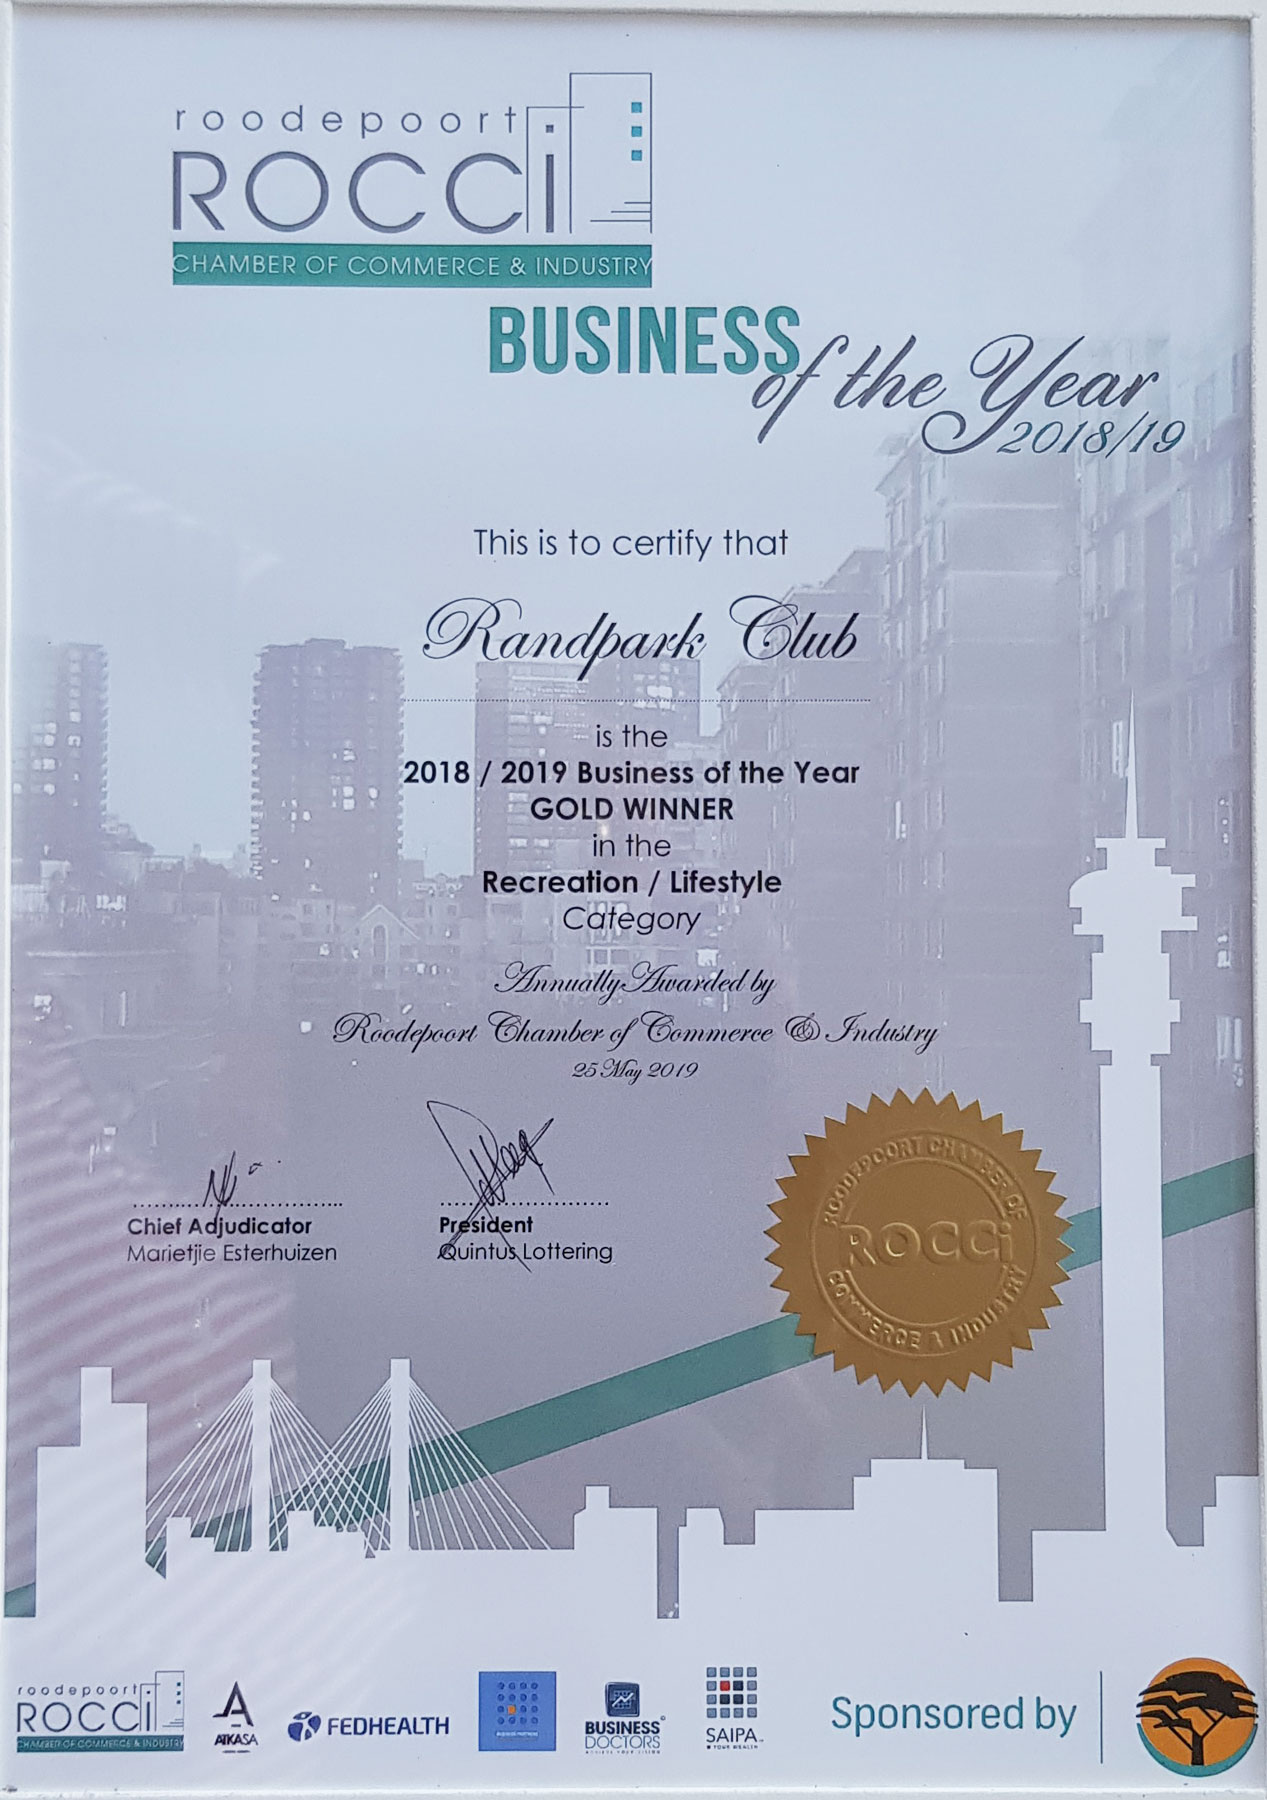 ROCCI/FNB Gold Award for Business of the Year in the Recreation and Lifestyle Category (2018/2019)